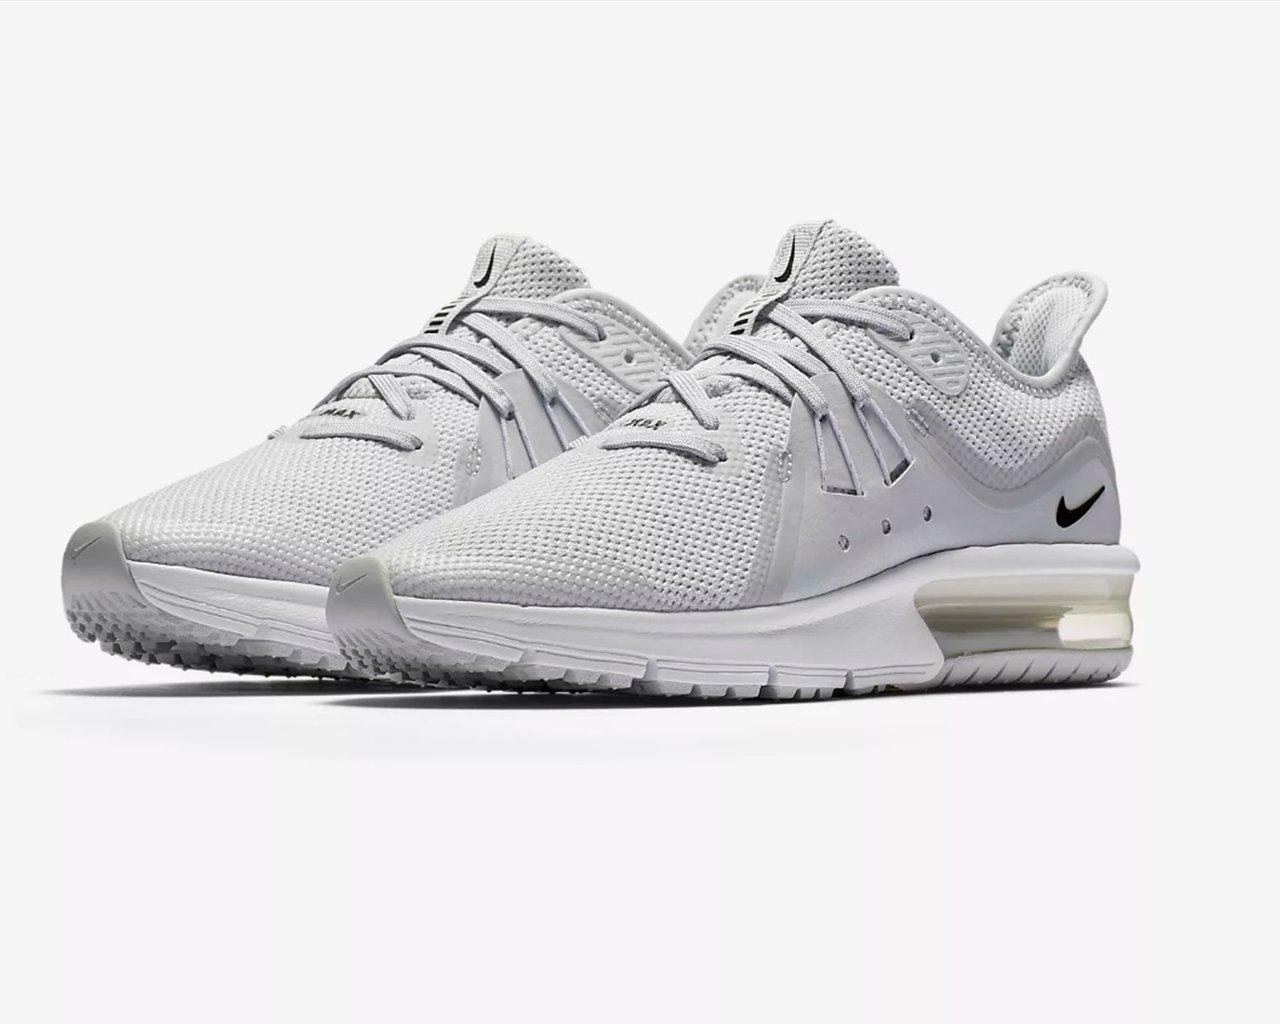 70ec2940c51 Nike Air Max Sequent 3 Gs Trainers Pure Platinum in Gray for Men - Lyst